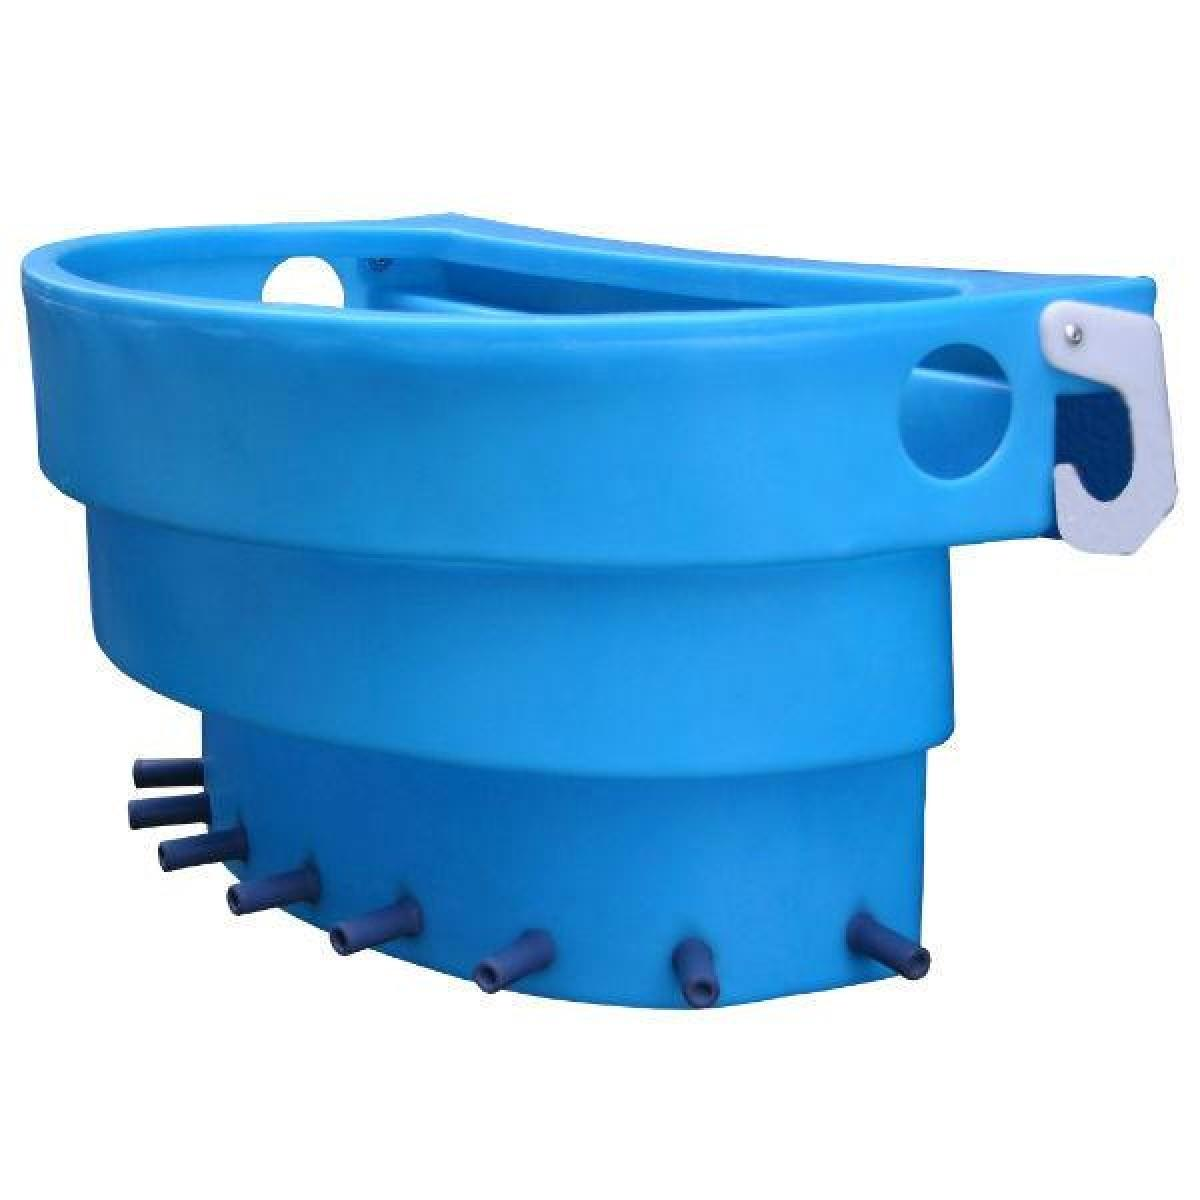 Rubber Feed Trough: JFC 10 Teat Gate Feeder Trough